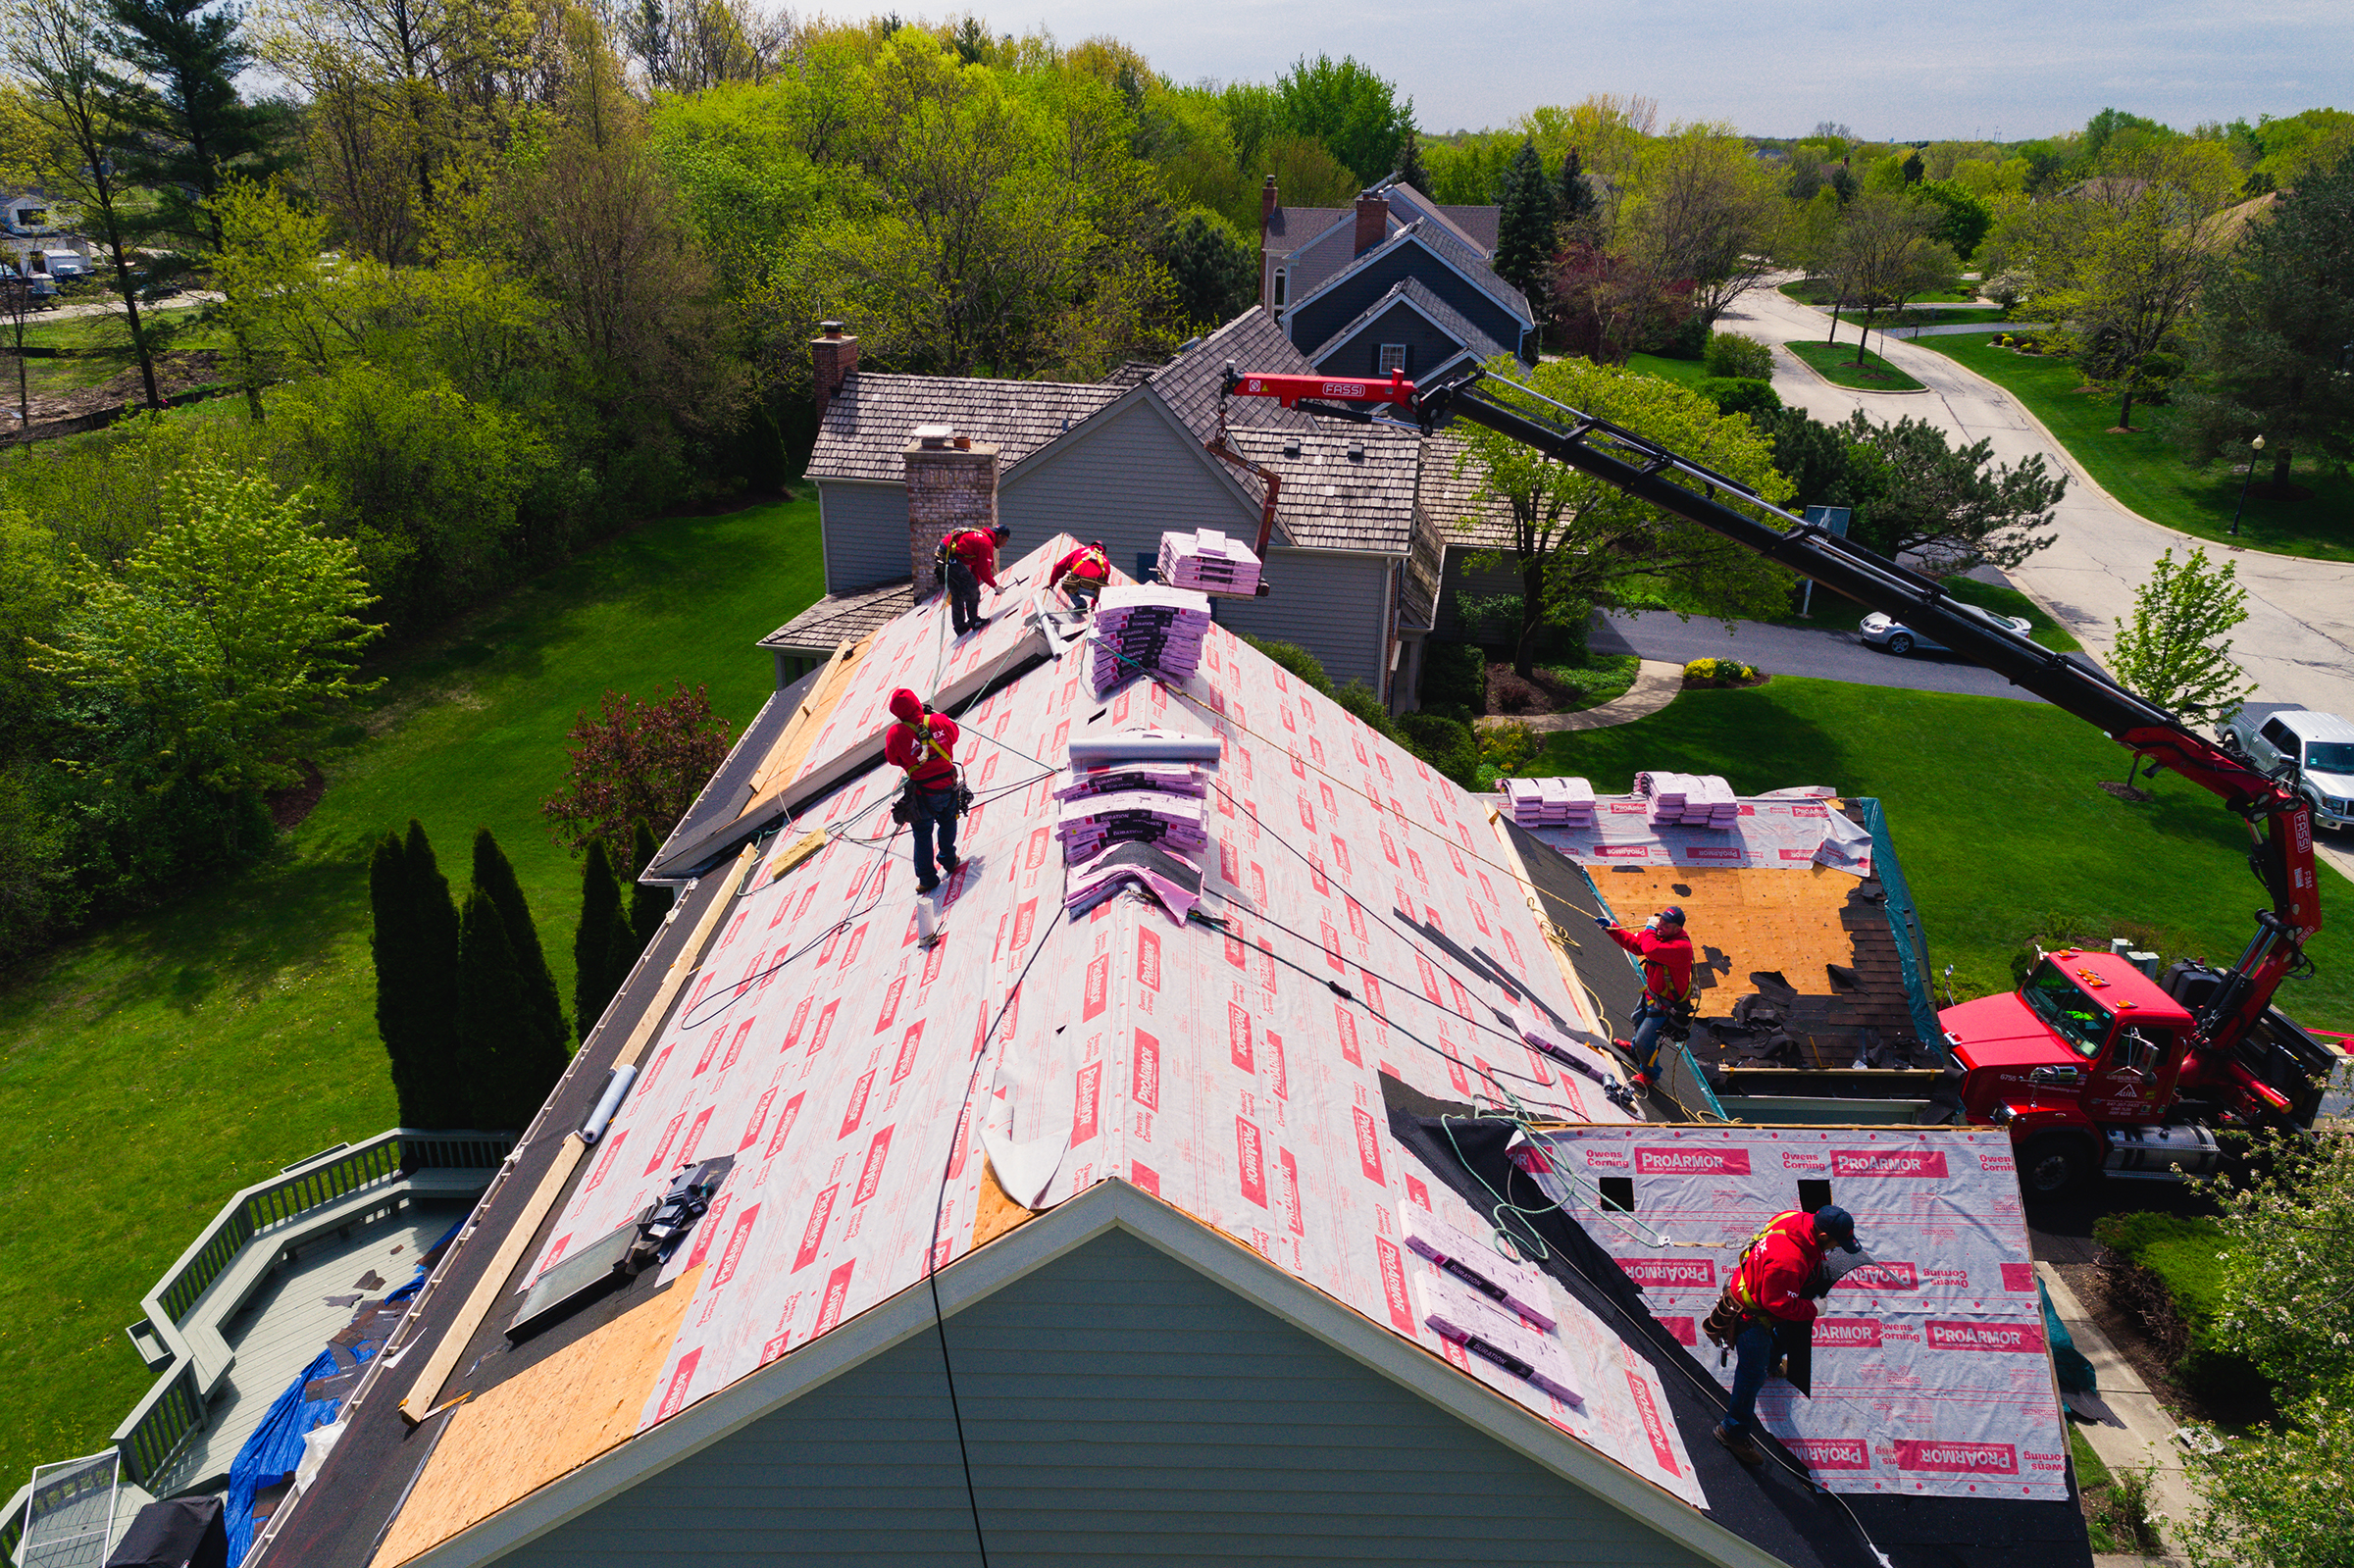 Meet Artex Roofing in Orlando Park, IL - Chicago South Suburb's Top Choice for Residential Roofing + Gutter Installation